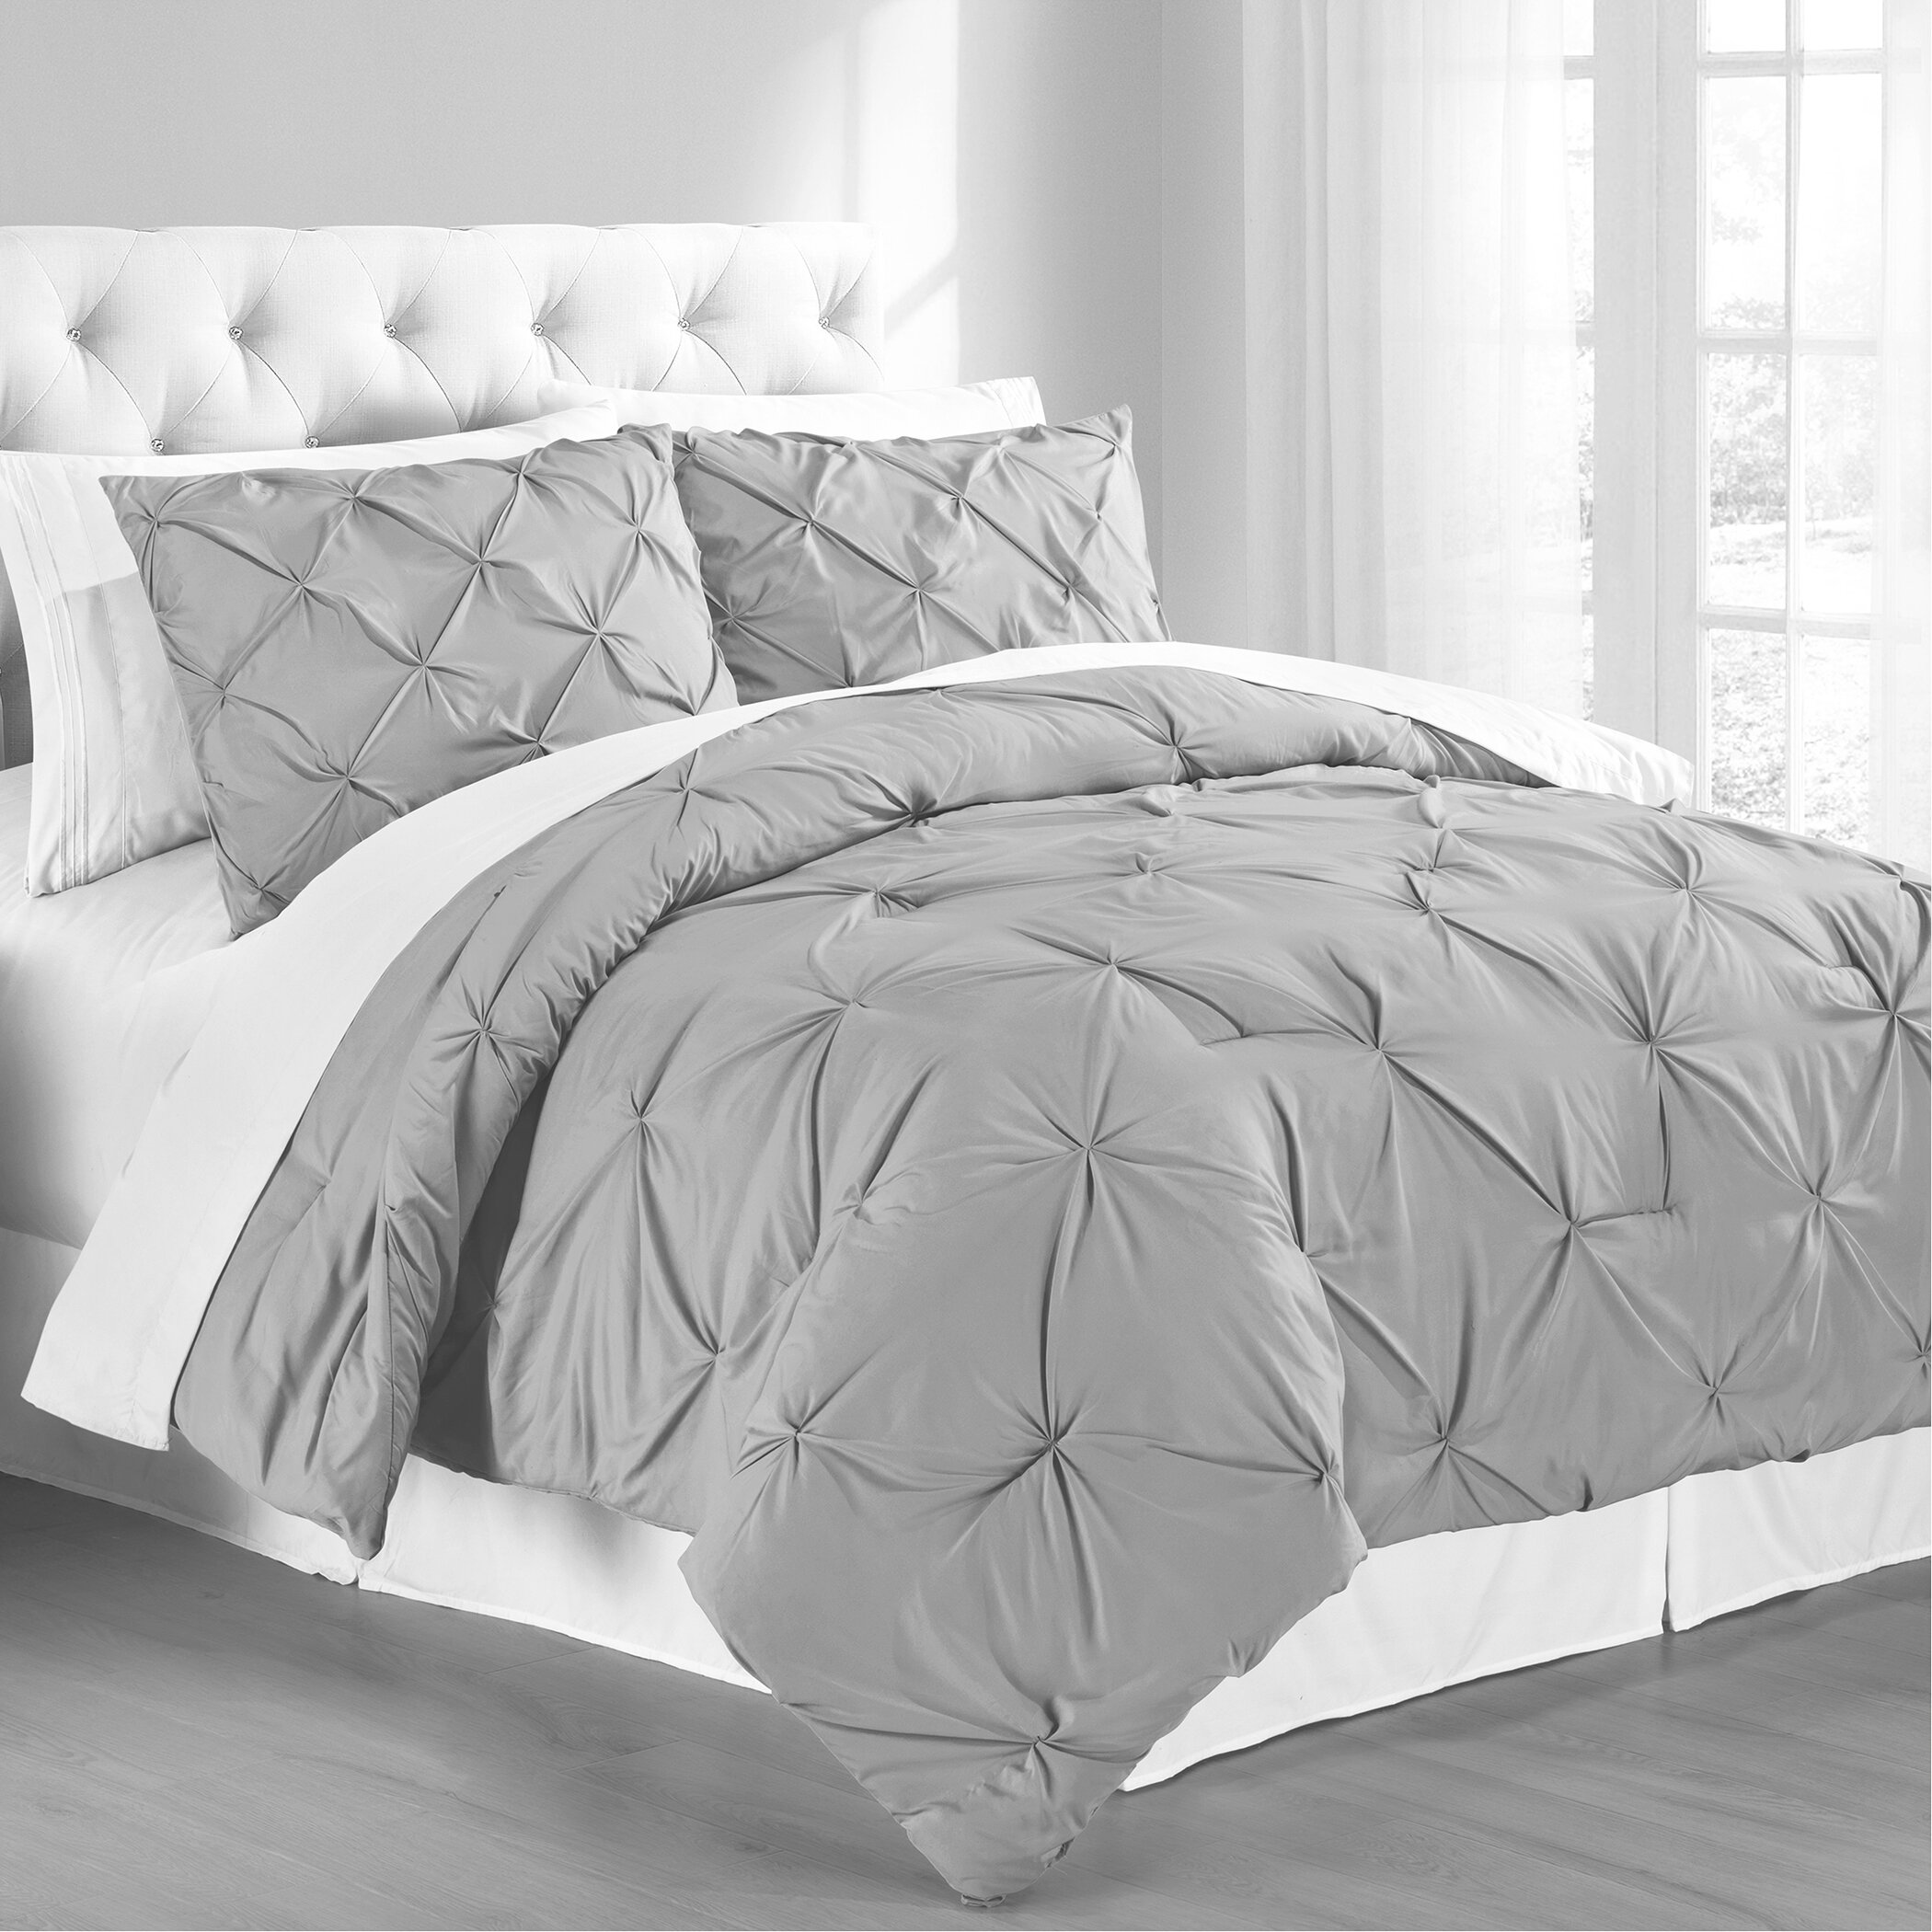 Gray Silver White Comforters You Ll Love In 2021 Wayfair